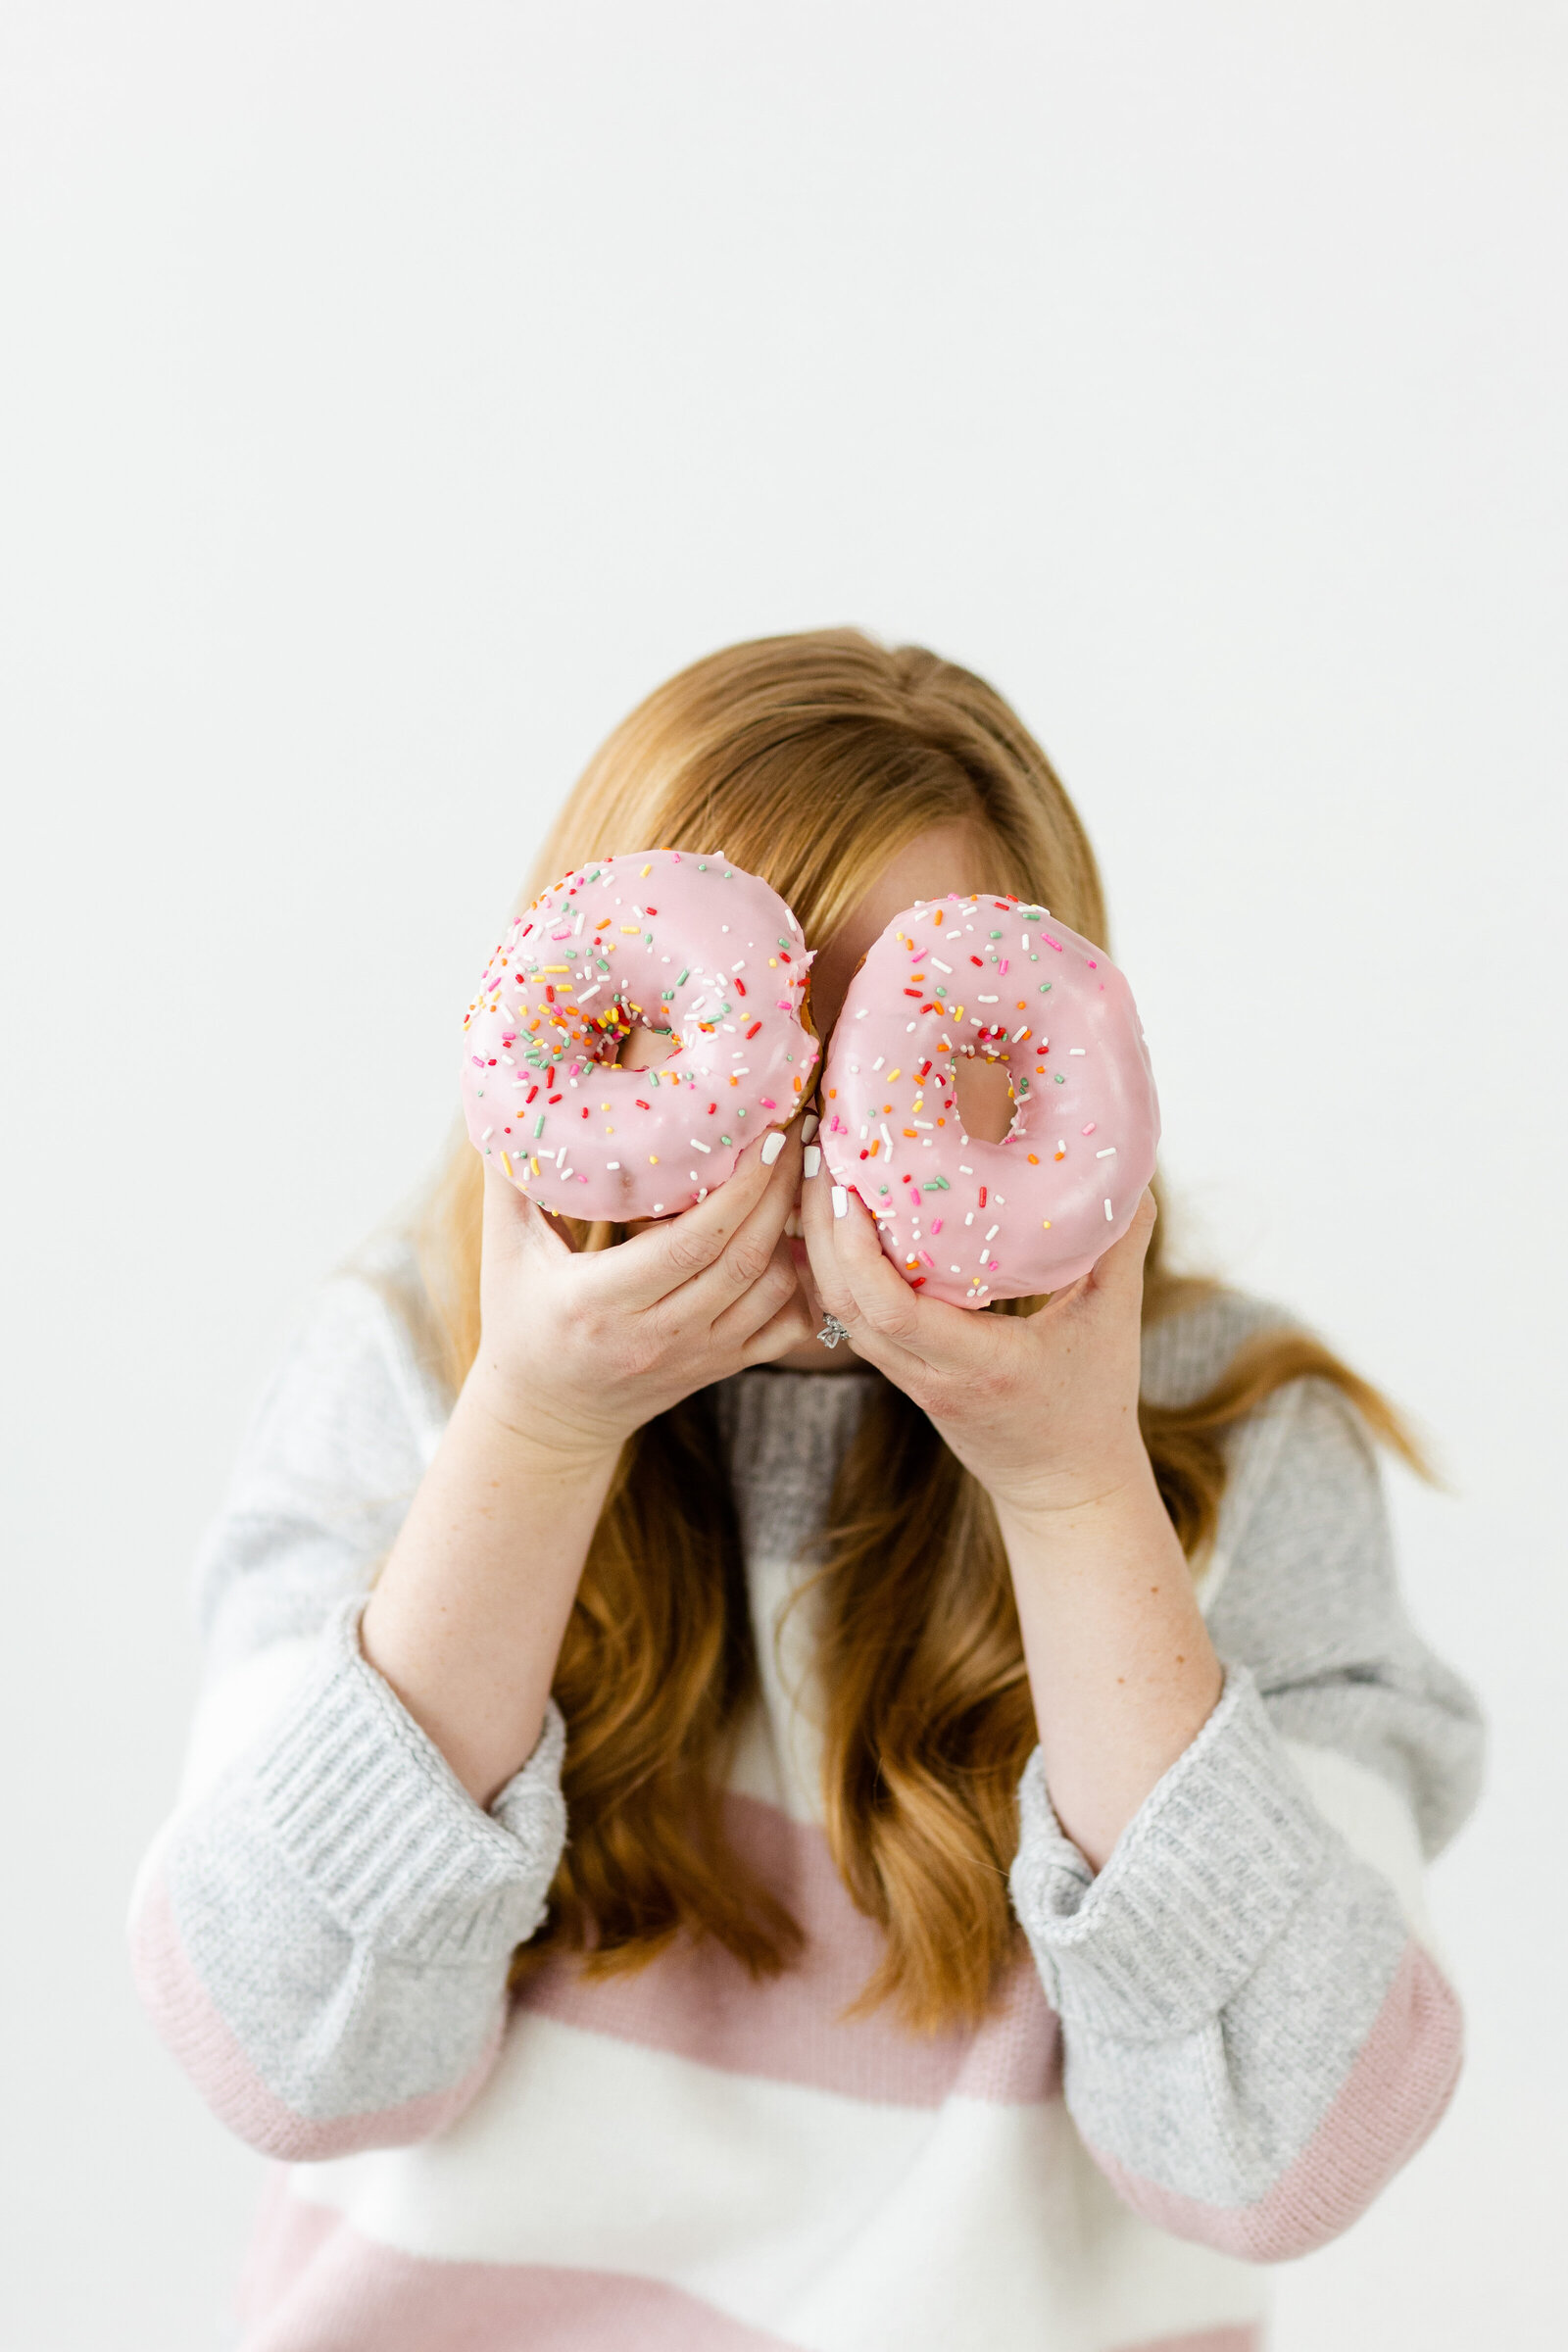 Ohio photographer posing with donuts for branding photos